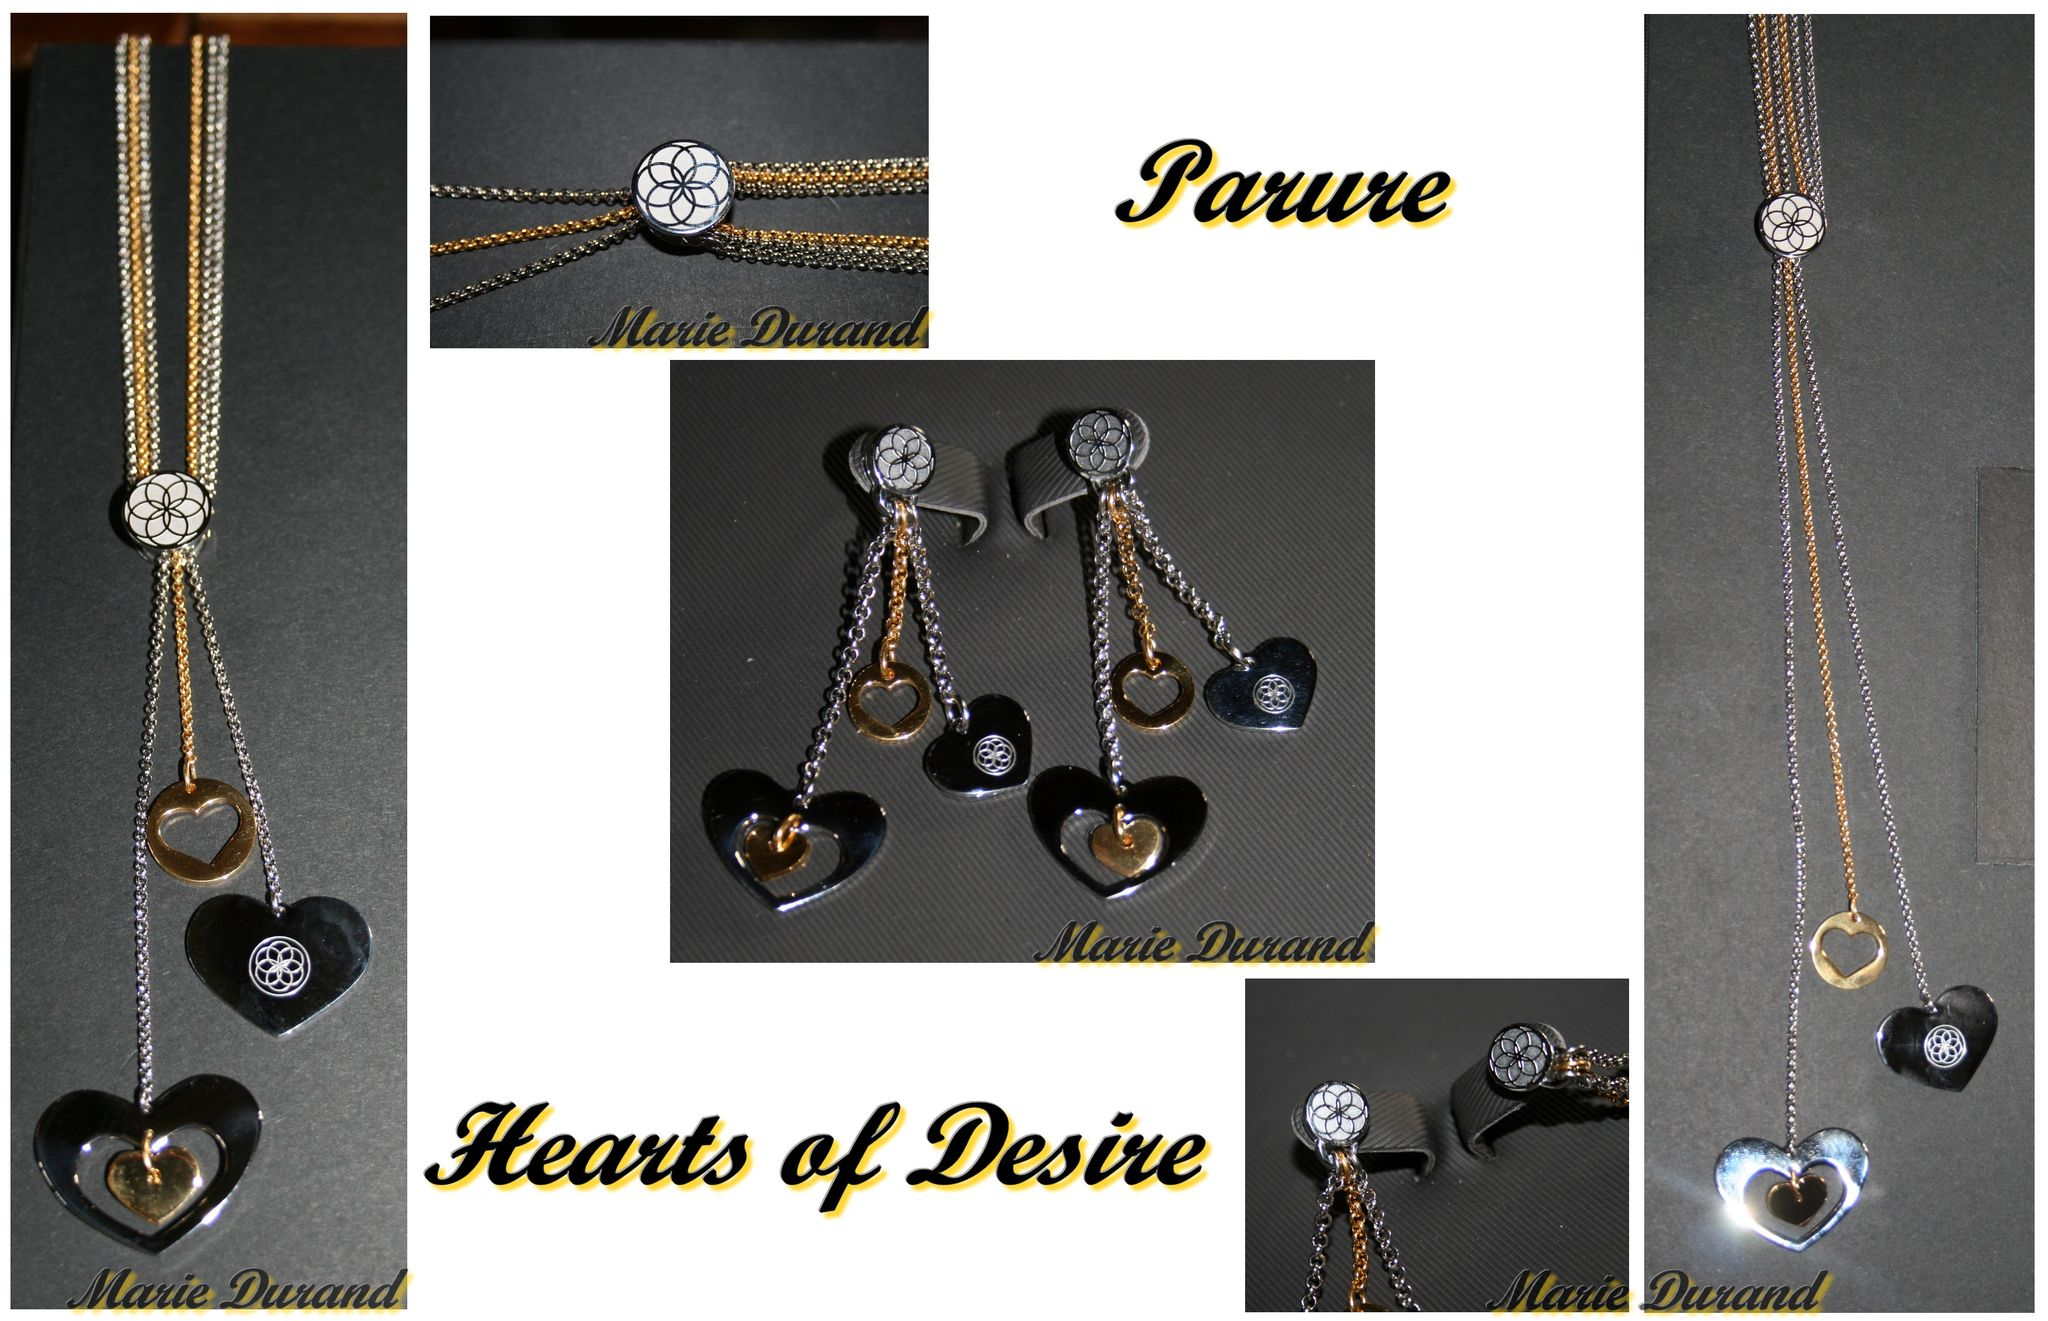 Parure Hearts of Desire